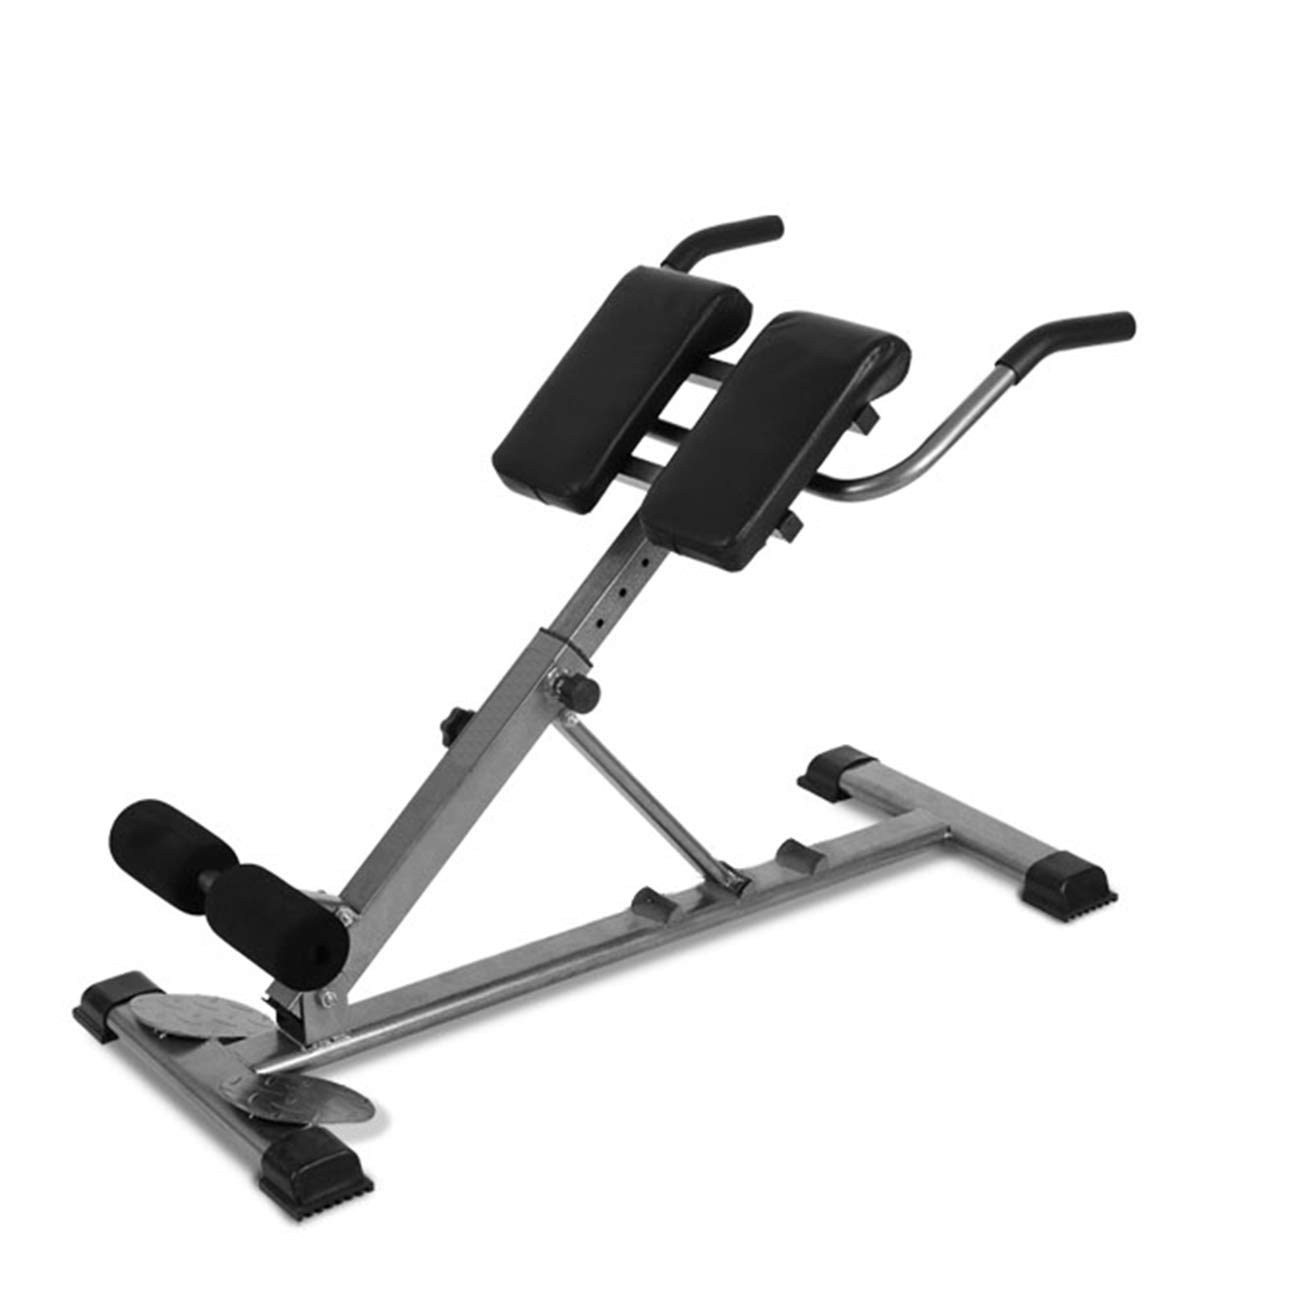 G4-MAX Roman Chair Back Hyper Extension Bench 30-40-50 Degrees Adjustable